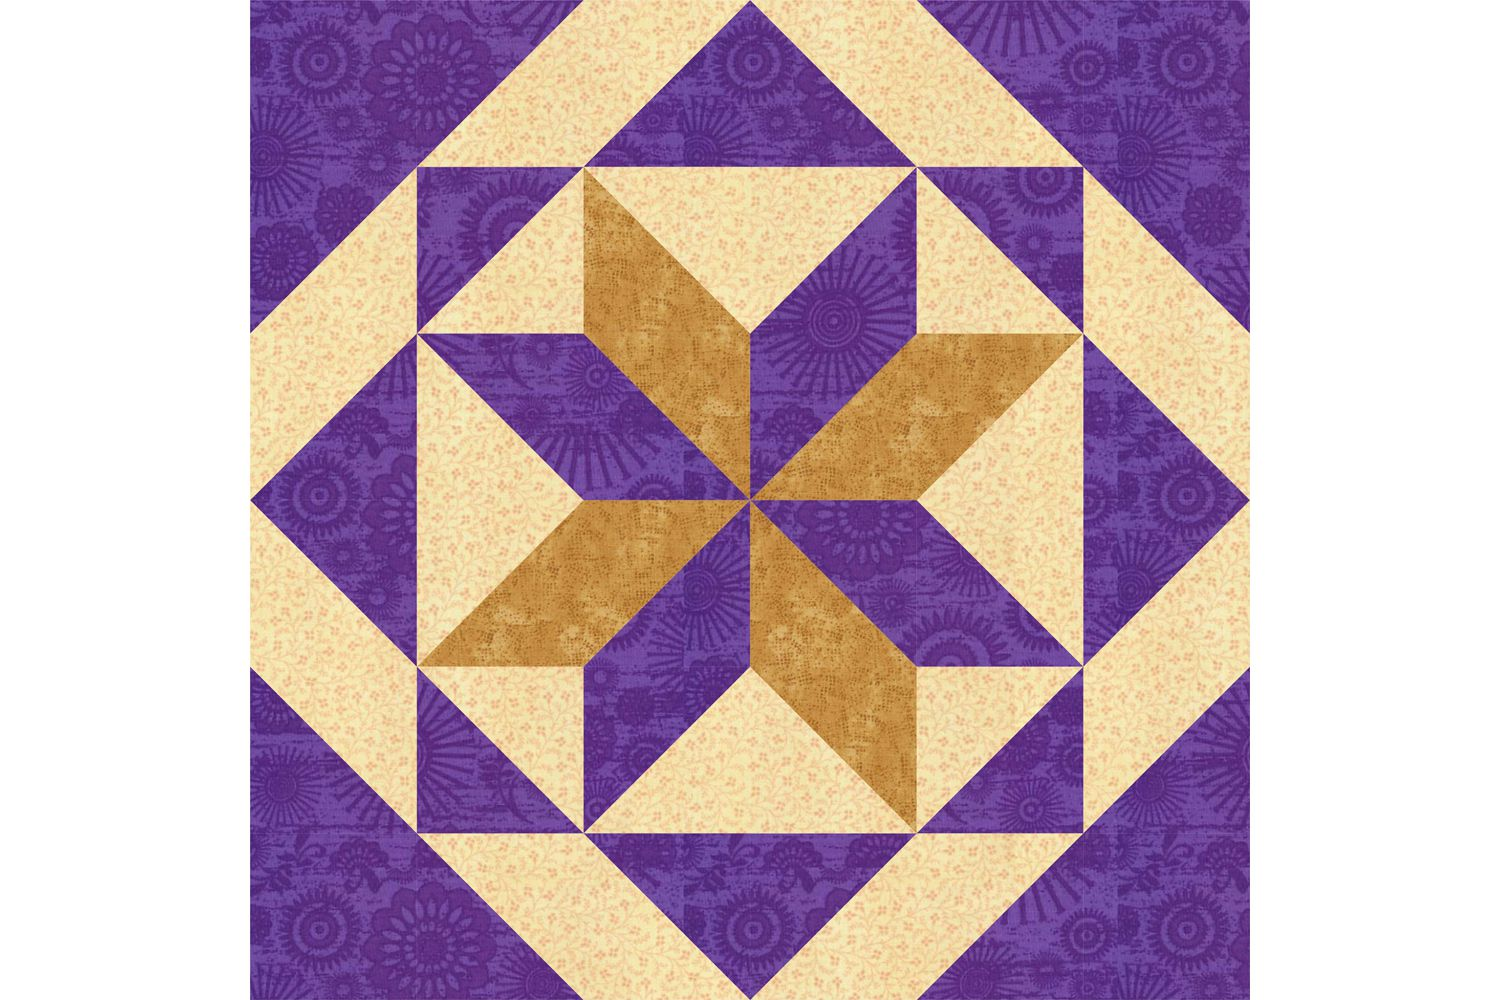 Quilt Pattern With Different Size Blocks : All Hallows Quilt Block Pattern in 2 Sizes